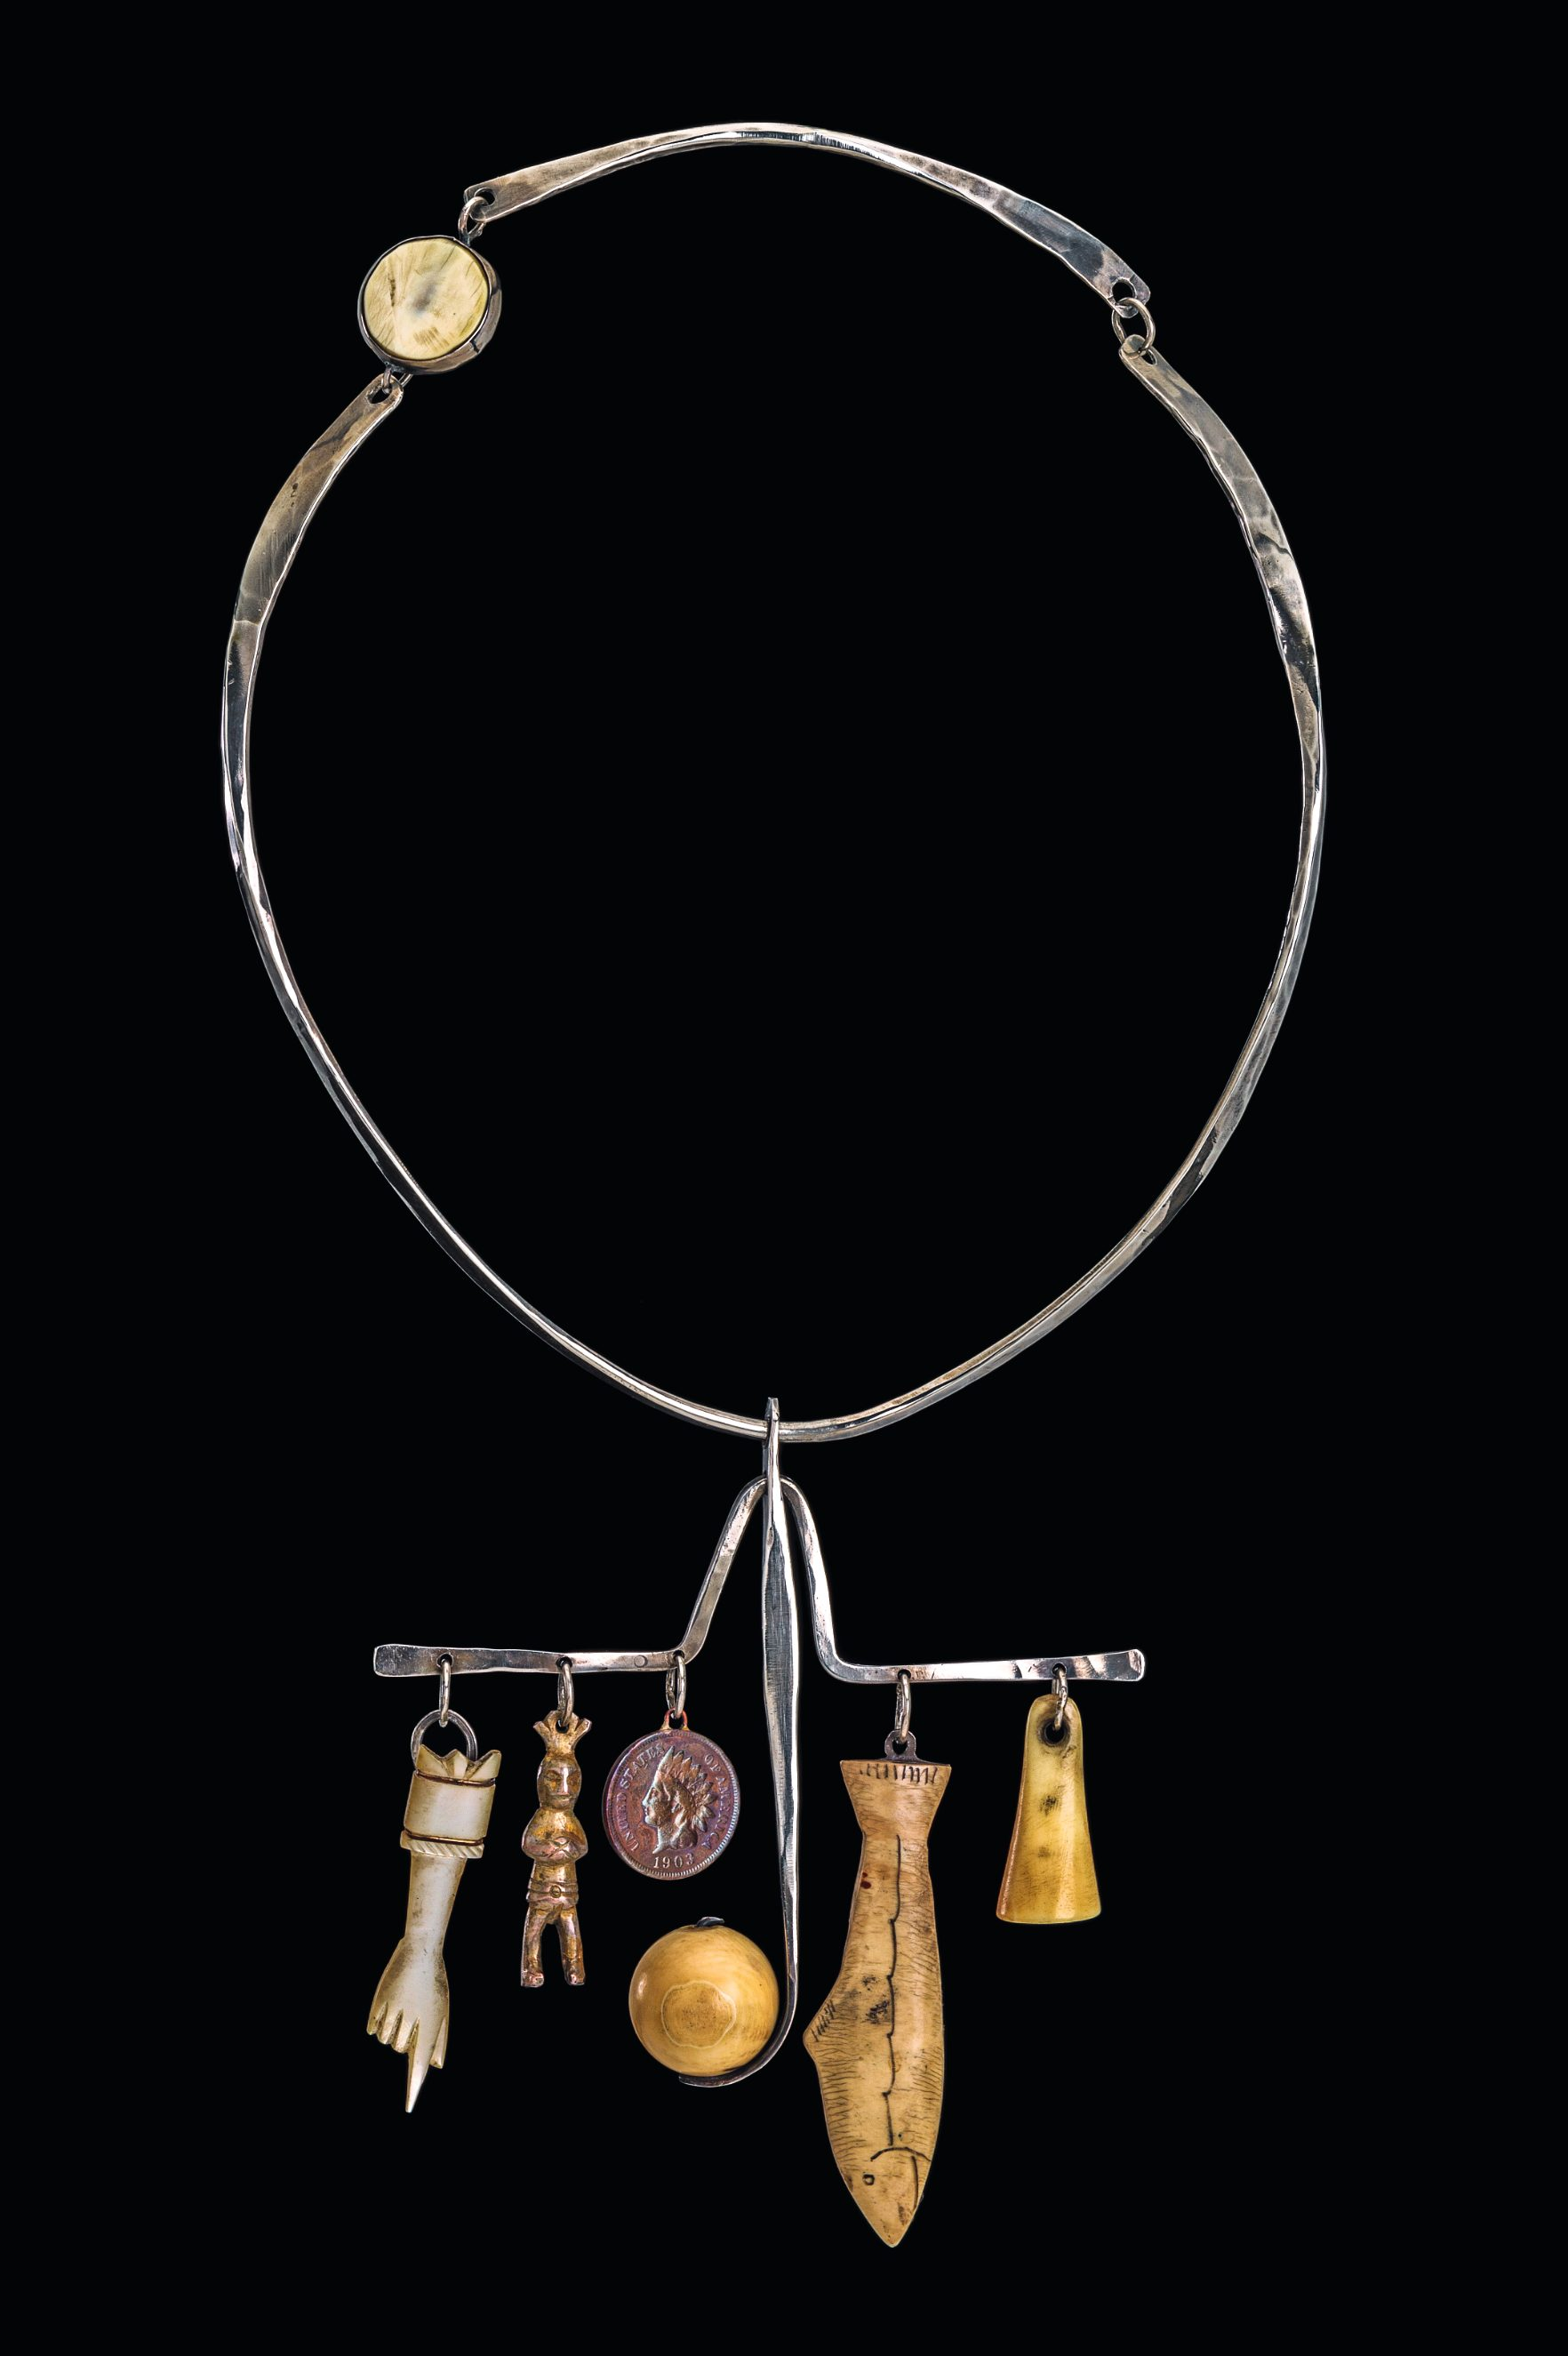 Ramona Solberg, Shaman's Necklace, halssieraad, 1968. Collectie Museum of Arts and Design. Foto John Bigelow Taylor, zilver, ivoor, objets trouvés